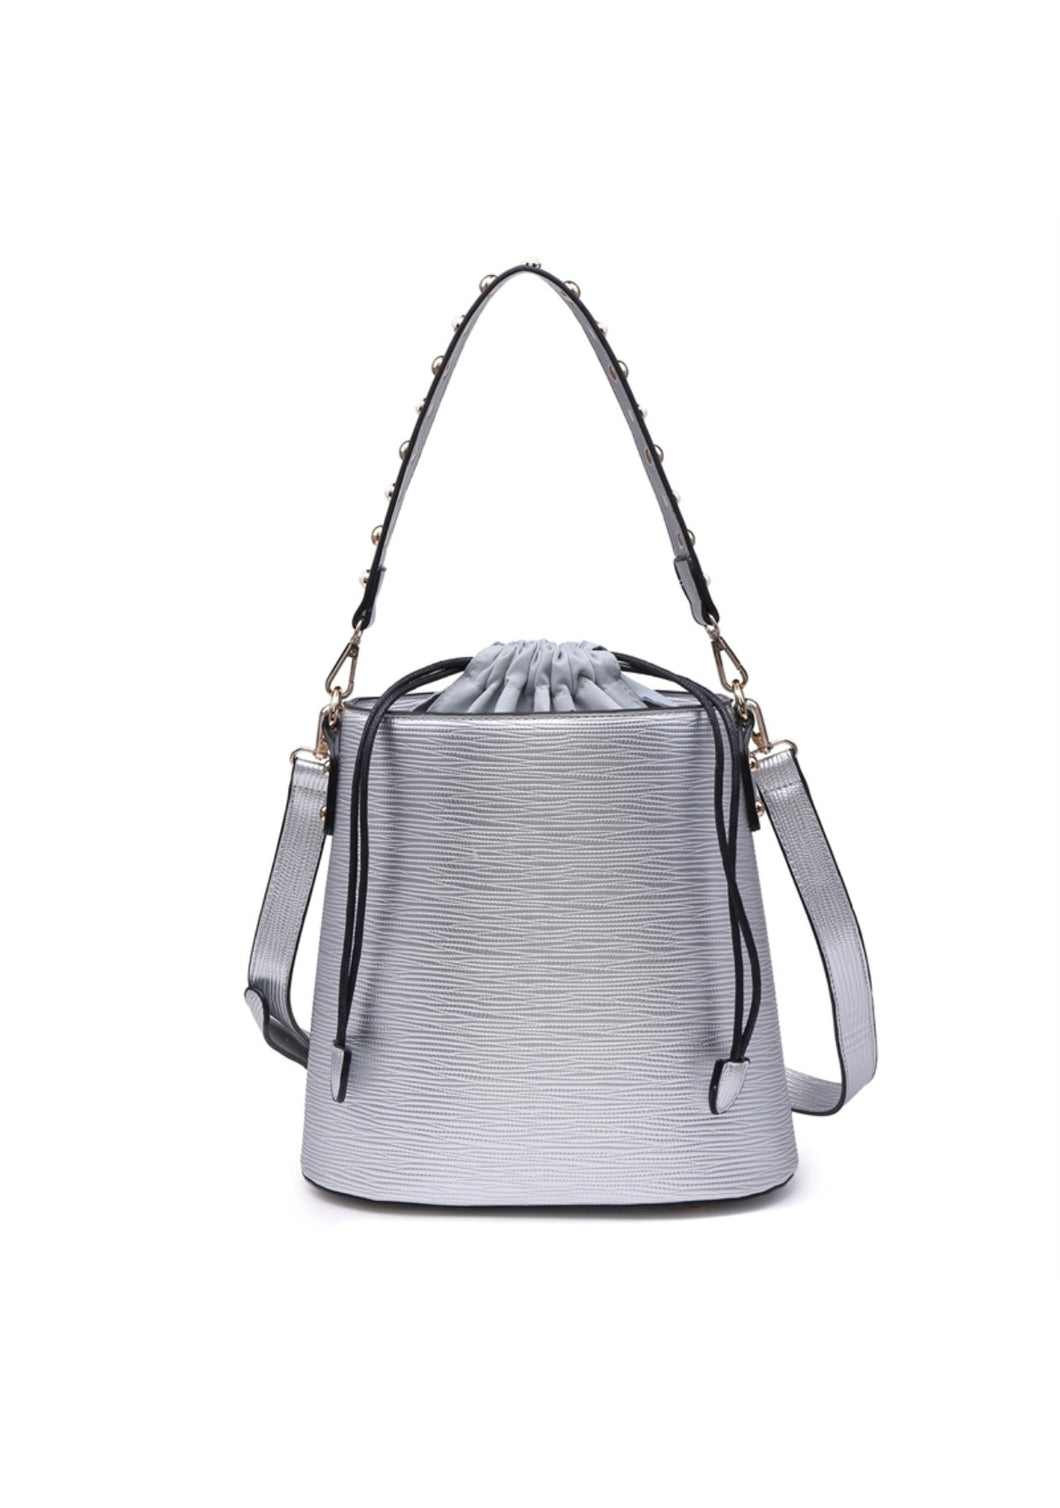 Silver shoulder bucket bag